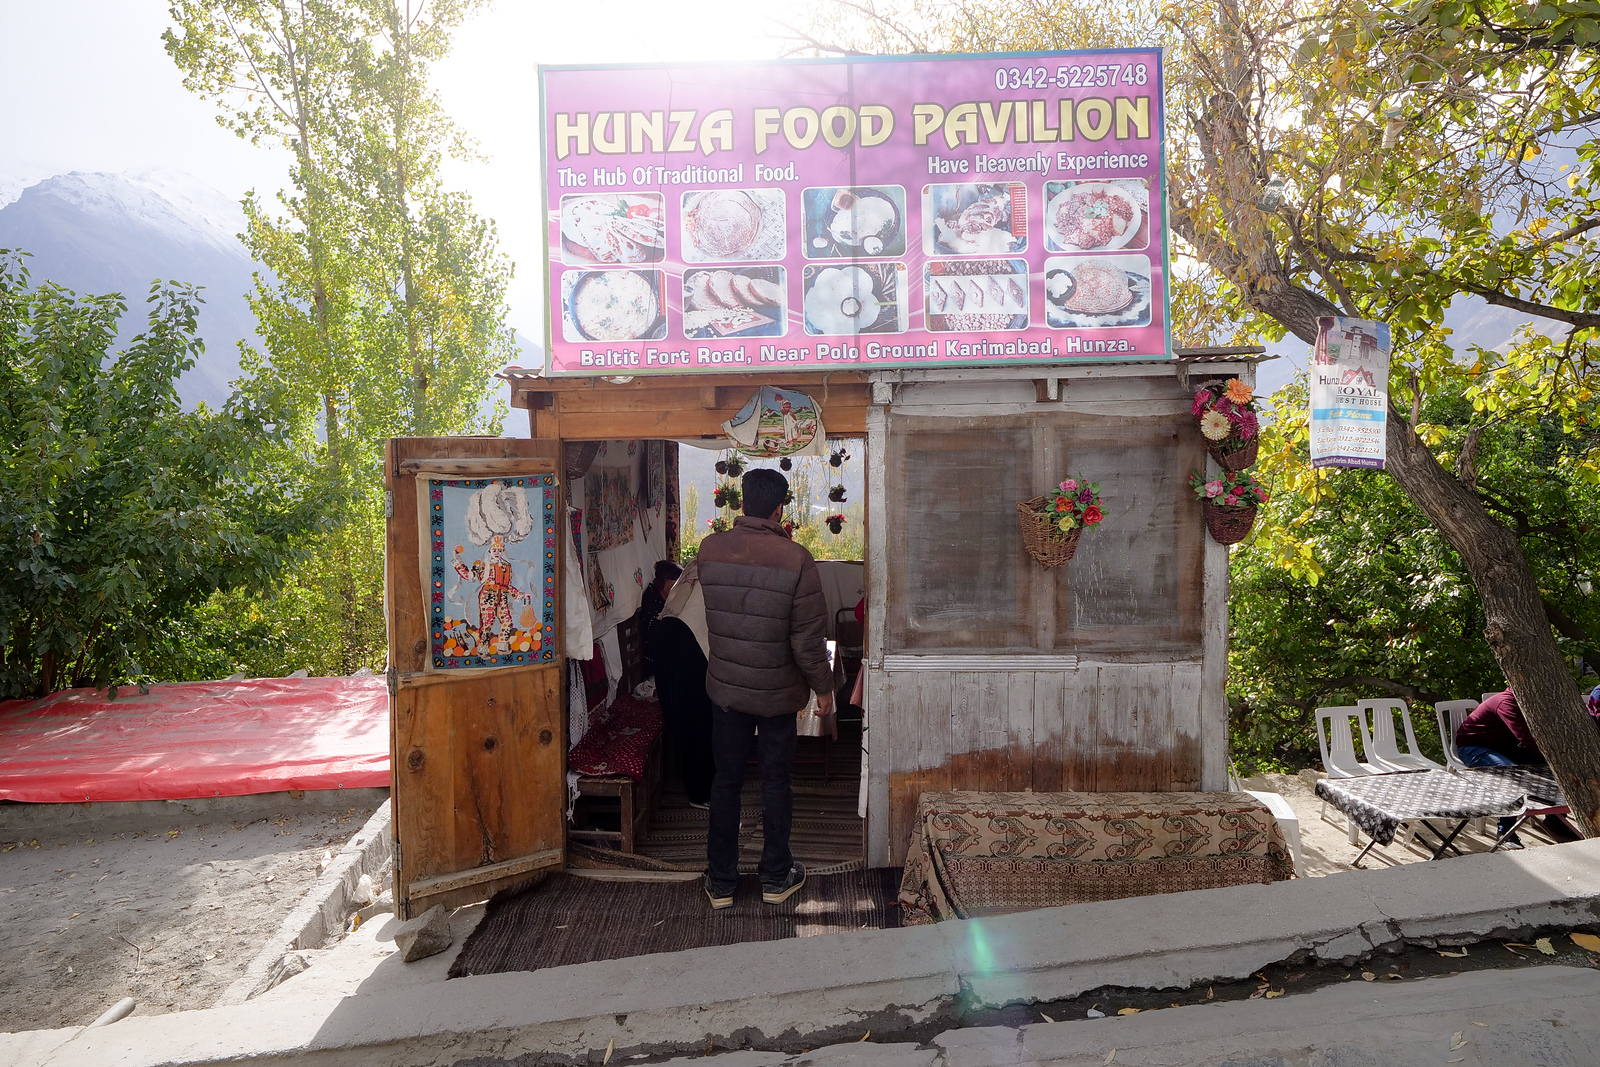 Hunza Food Pavilion in Karimabad